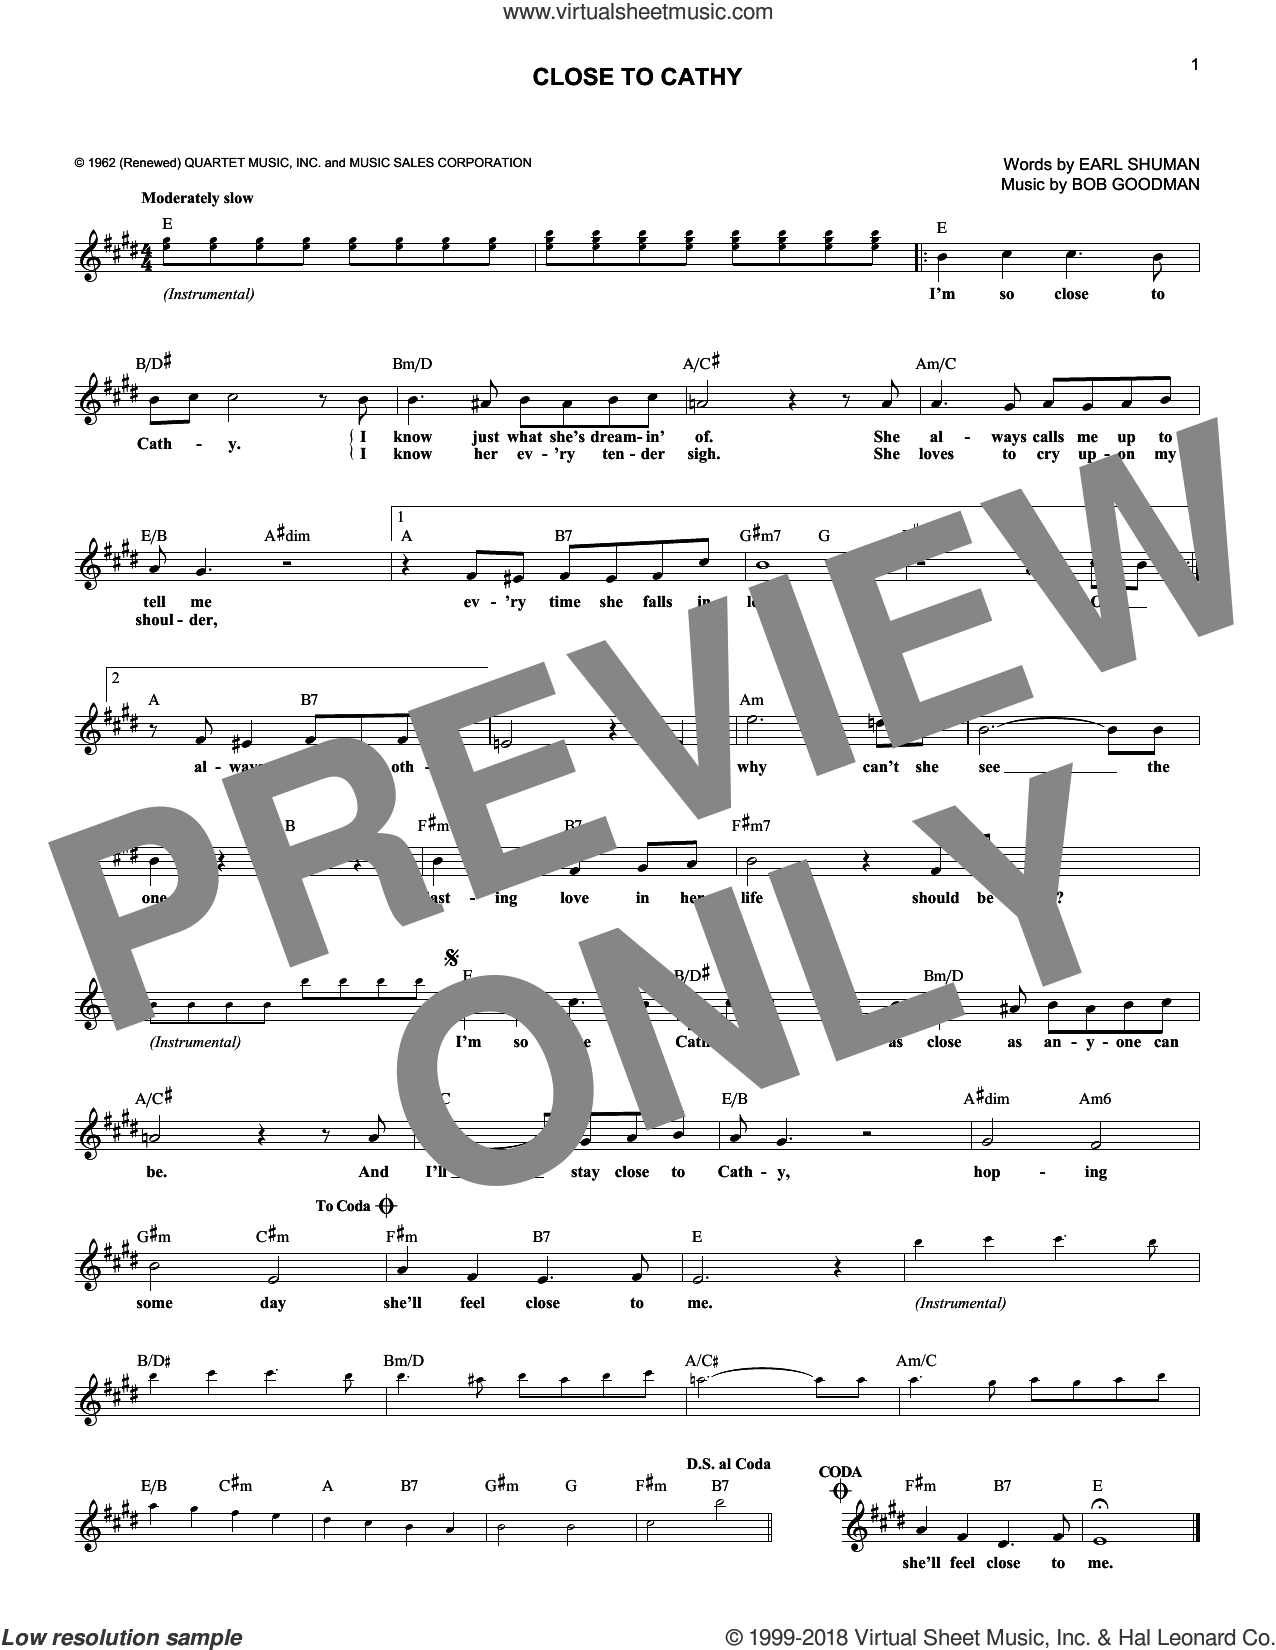 Close To Cathy sheet music for voice and other instruments (fake book) by Mike Clifford, Earl Shuman and Robert Goodman, intermediate. Score Image Preview.